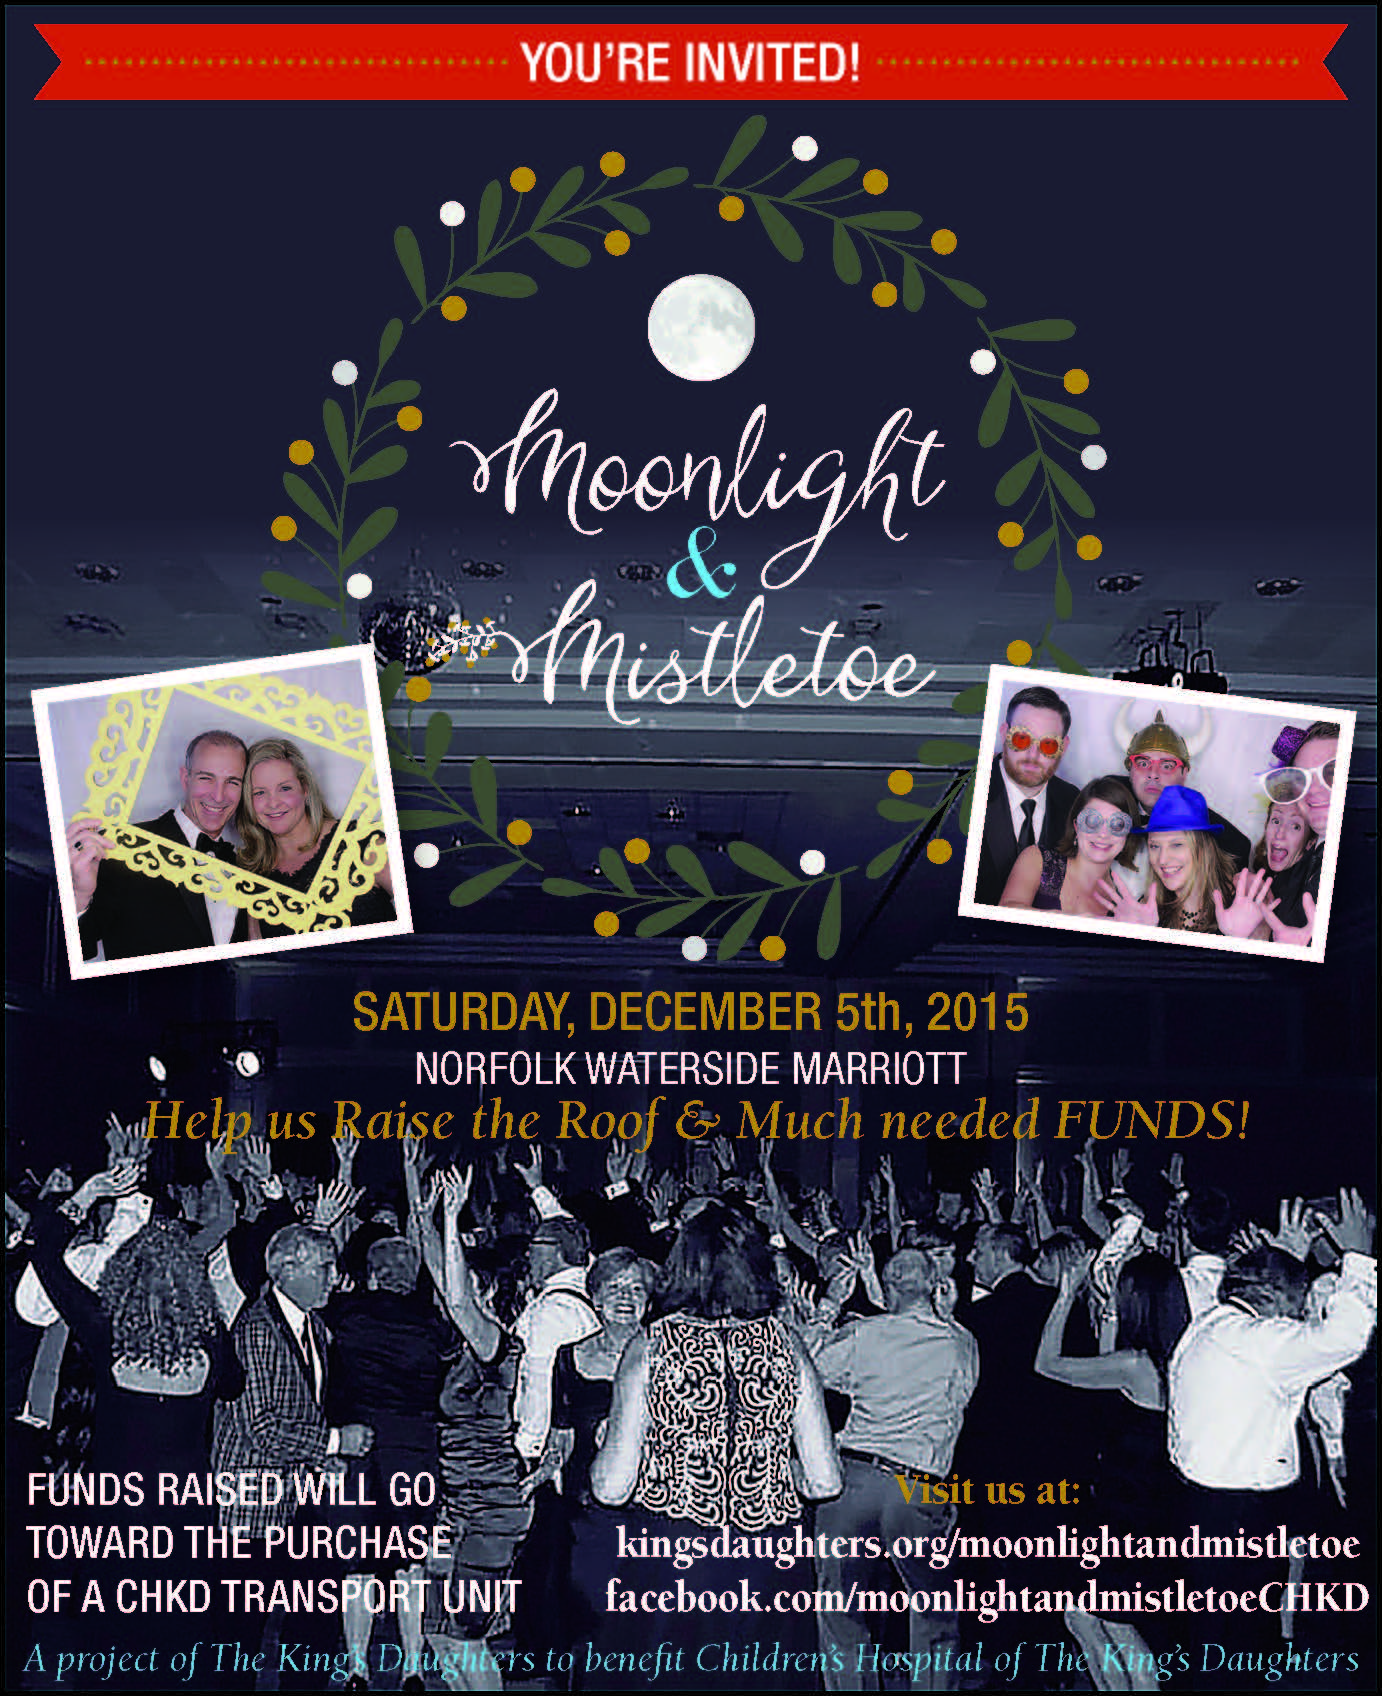 Moonlight & Mistletoe to benefit CHKD